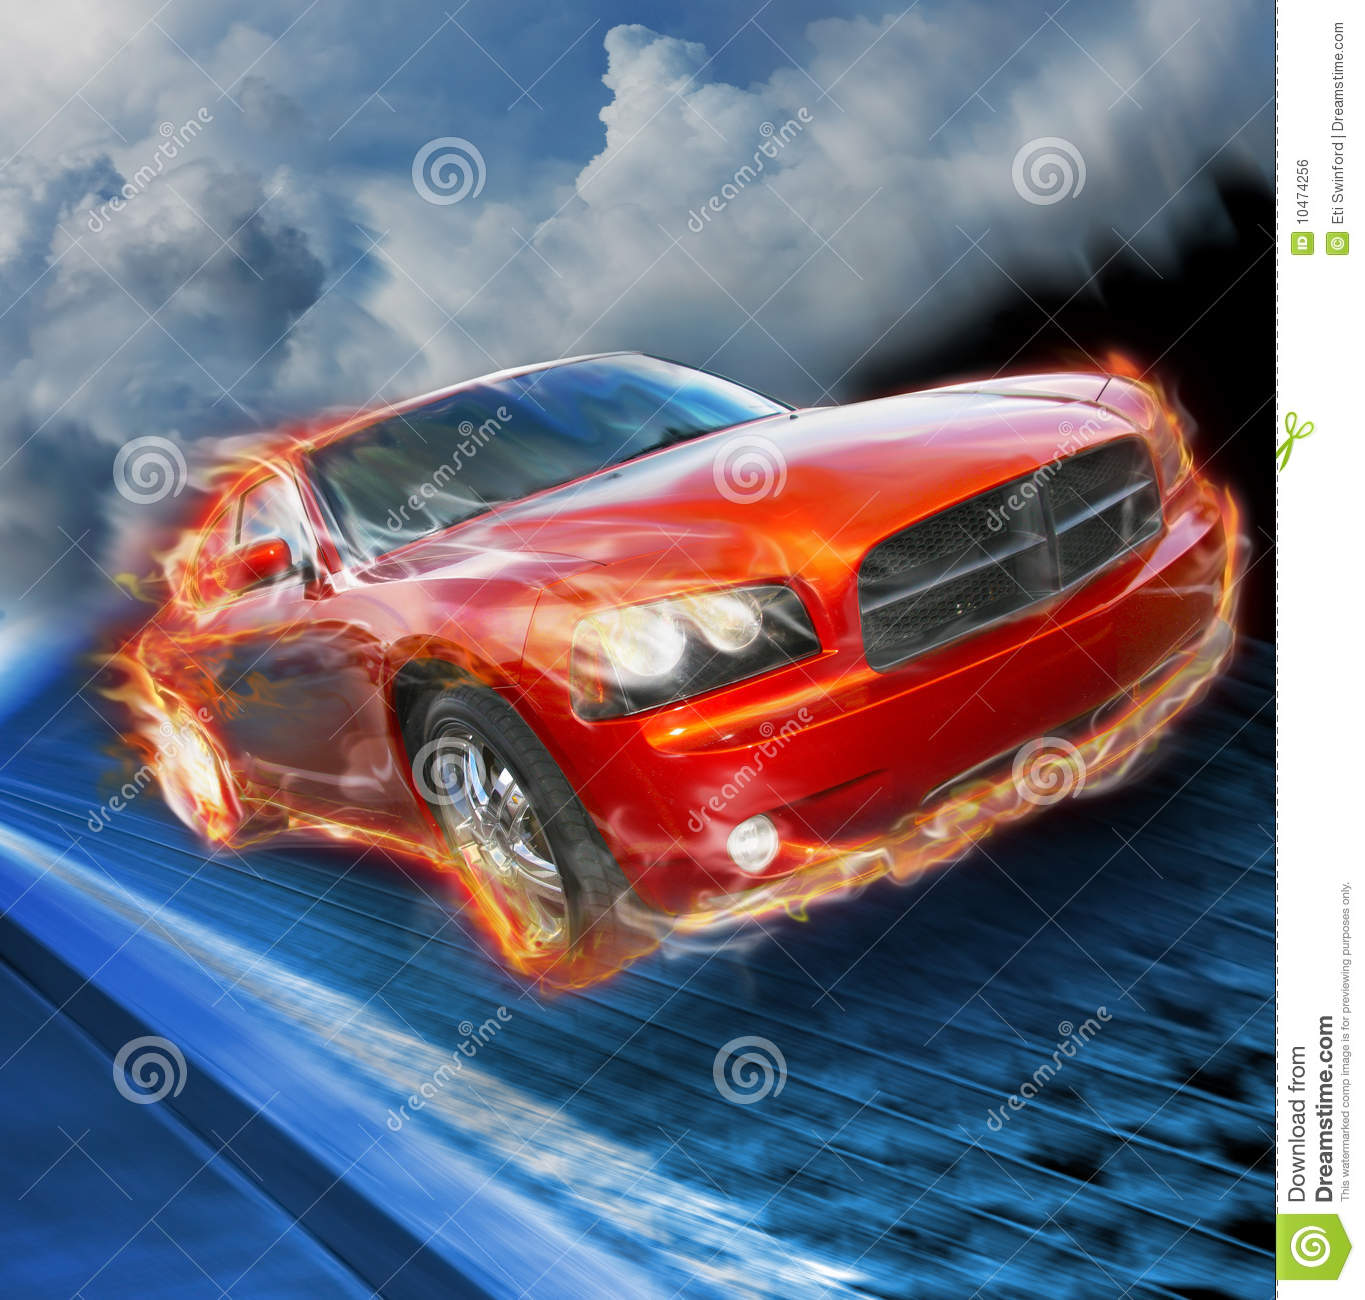 Fast Car Stock Photo. Image Of Dramatic, Flaming, Hemi